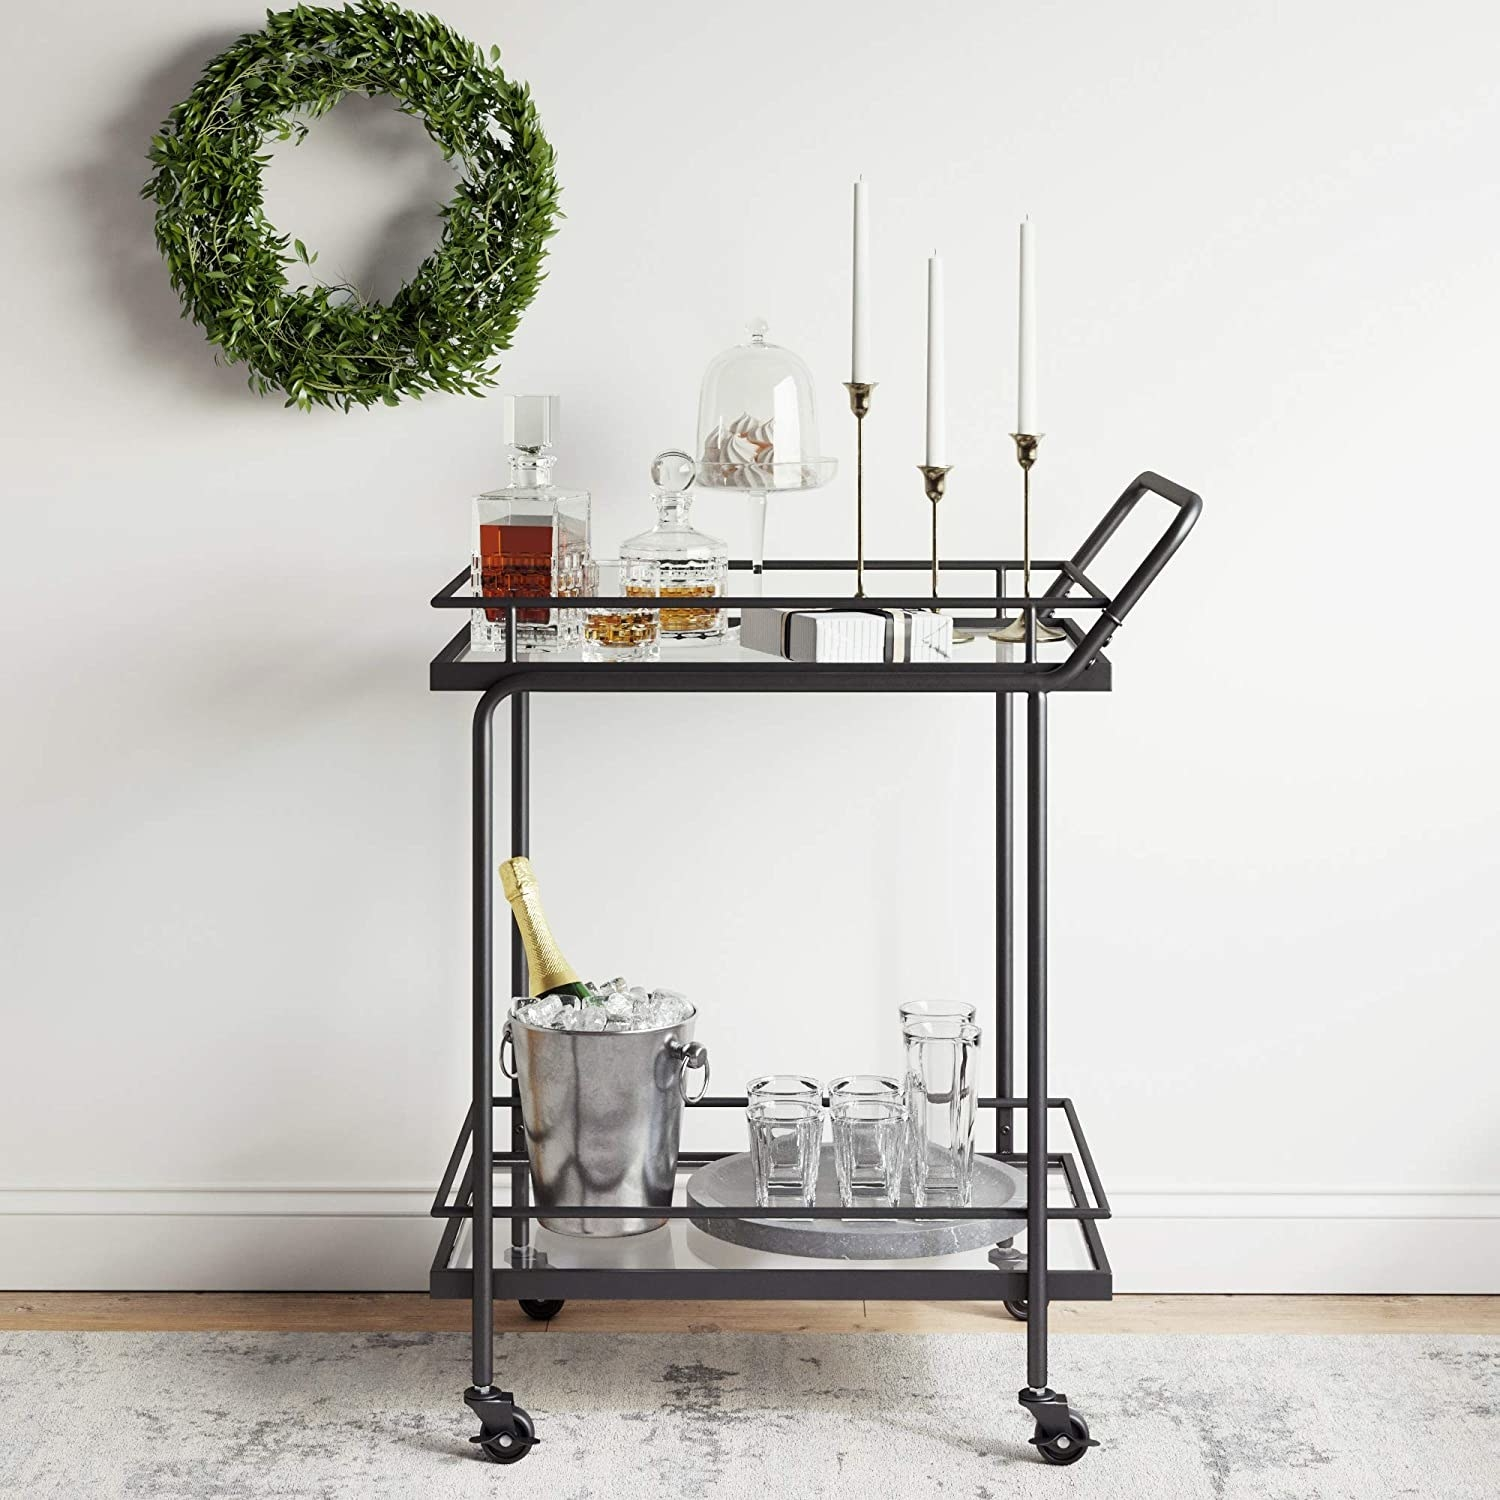 The two shelf black and glass cart